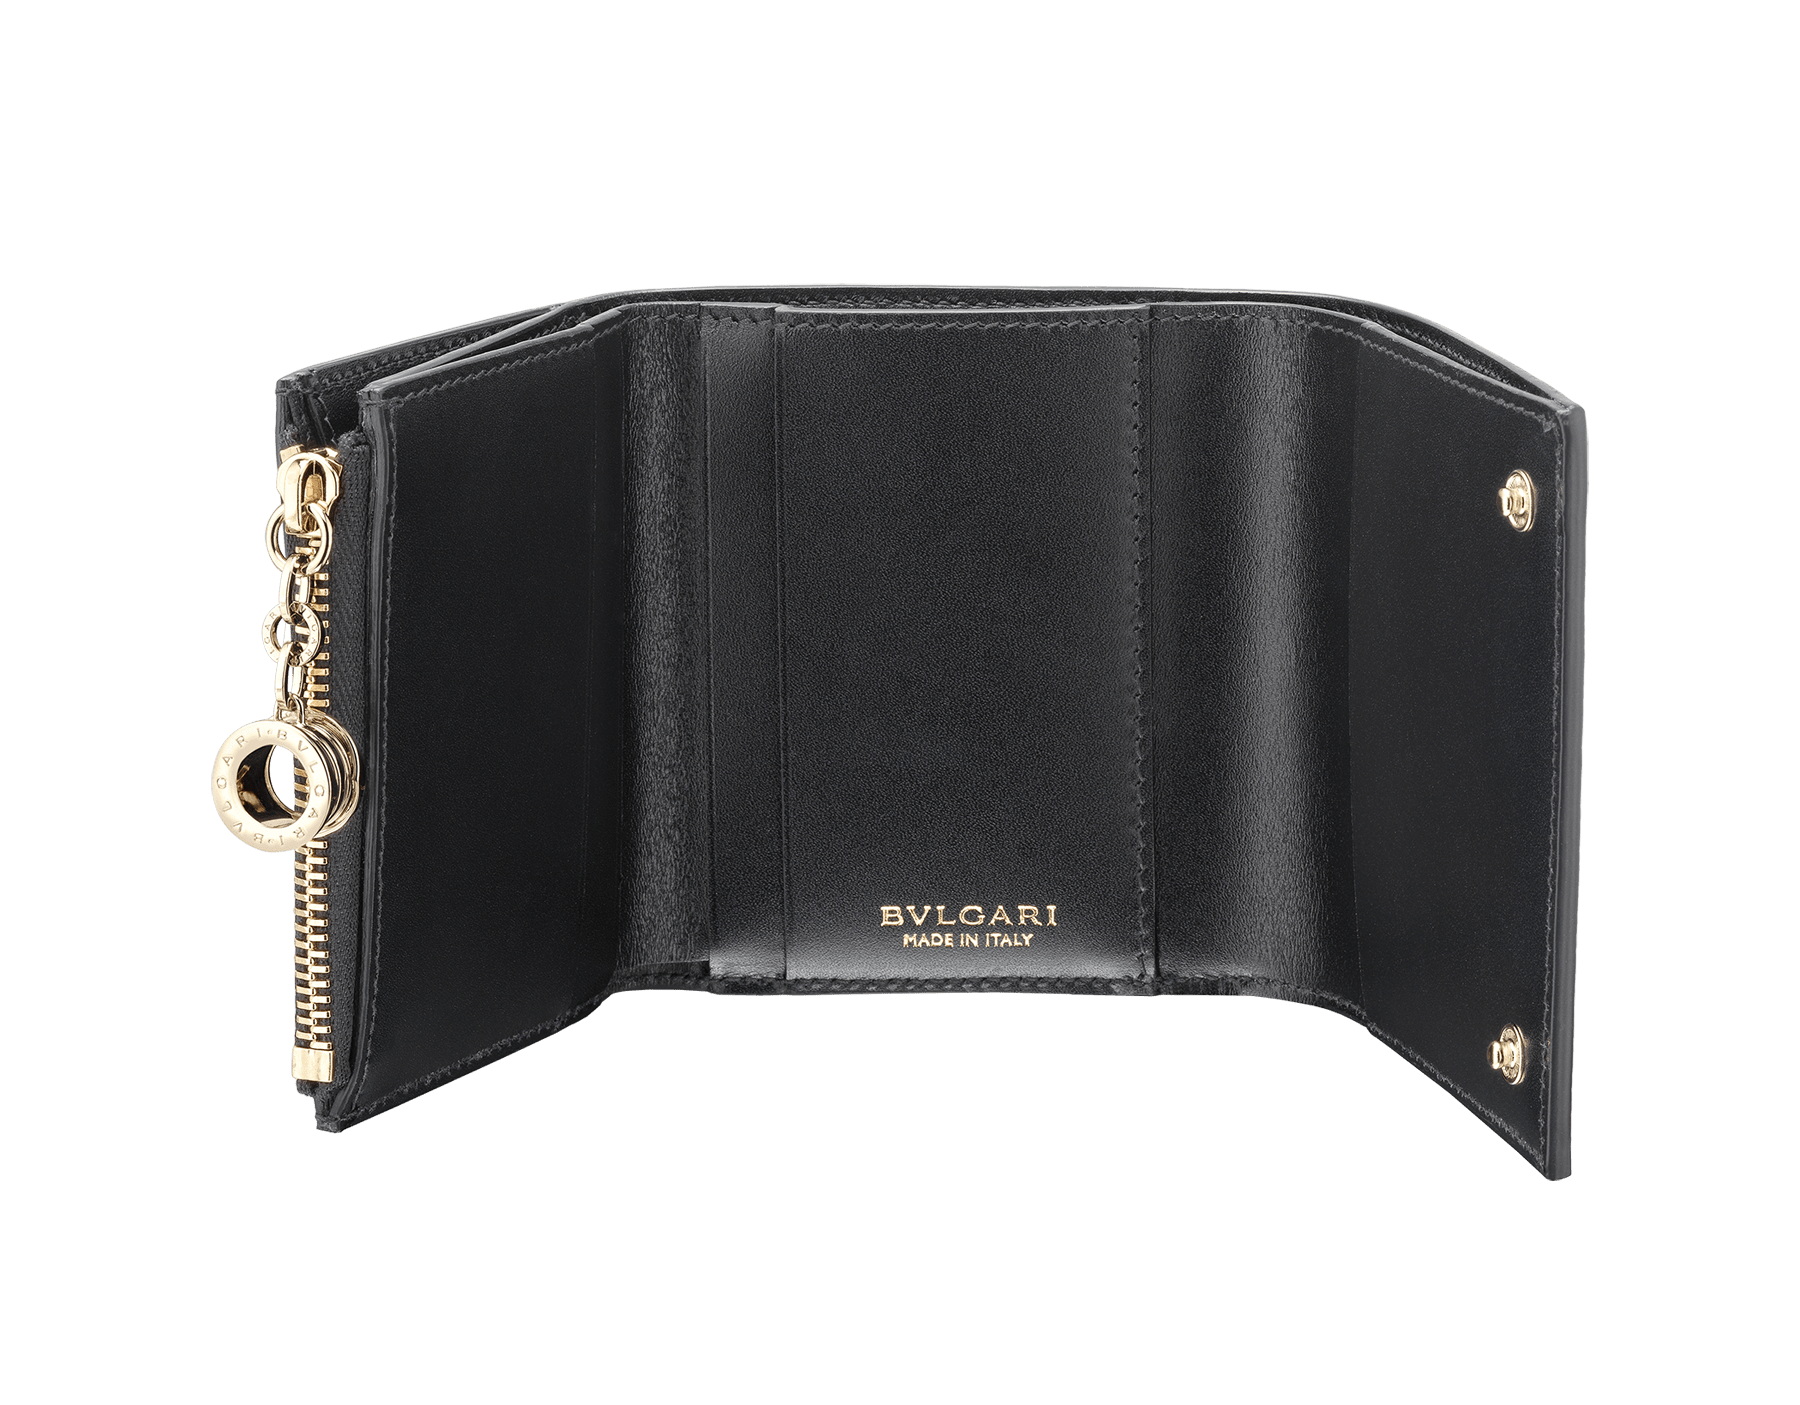 B.zero1 super compact wallet in black goatskin. Iconic B.zero1 charm in light gold plated brass. 288240 image 2